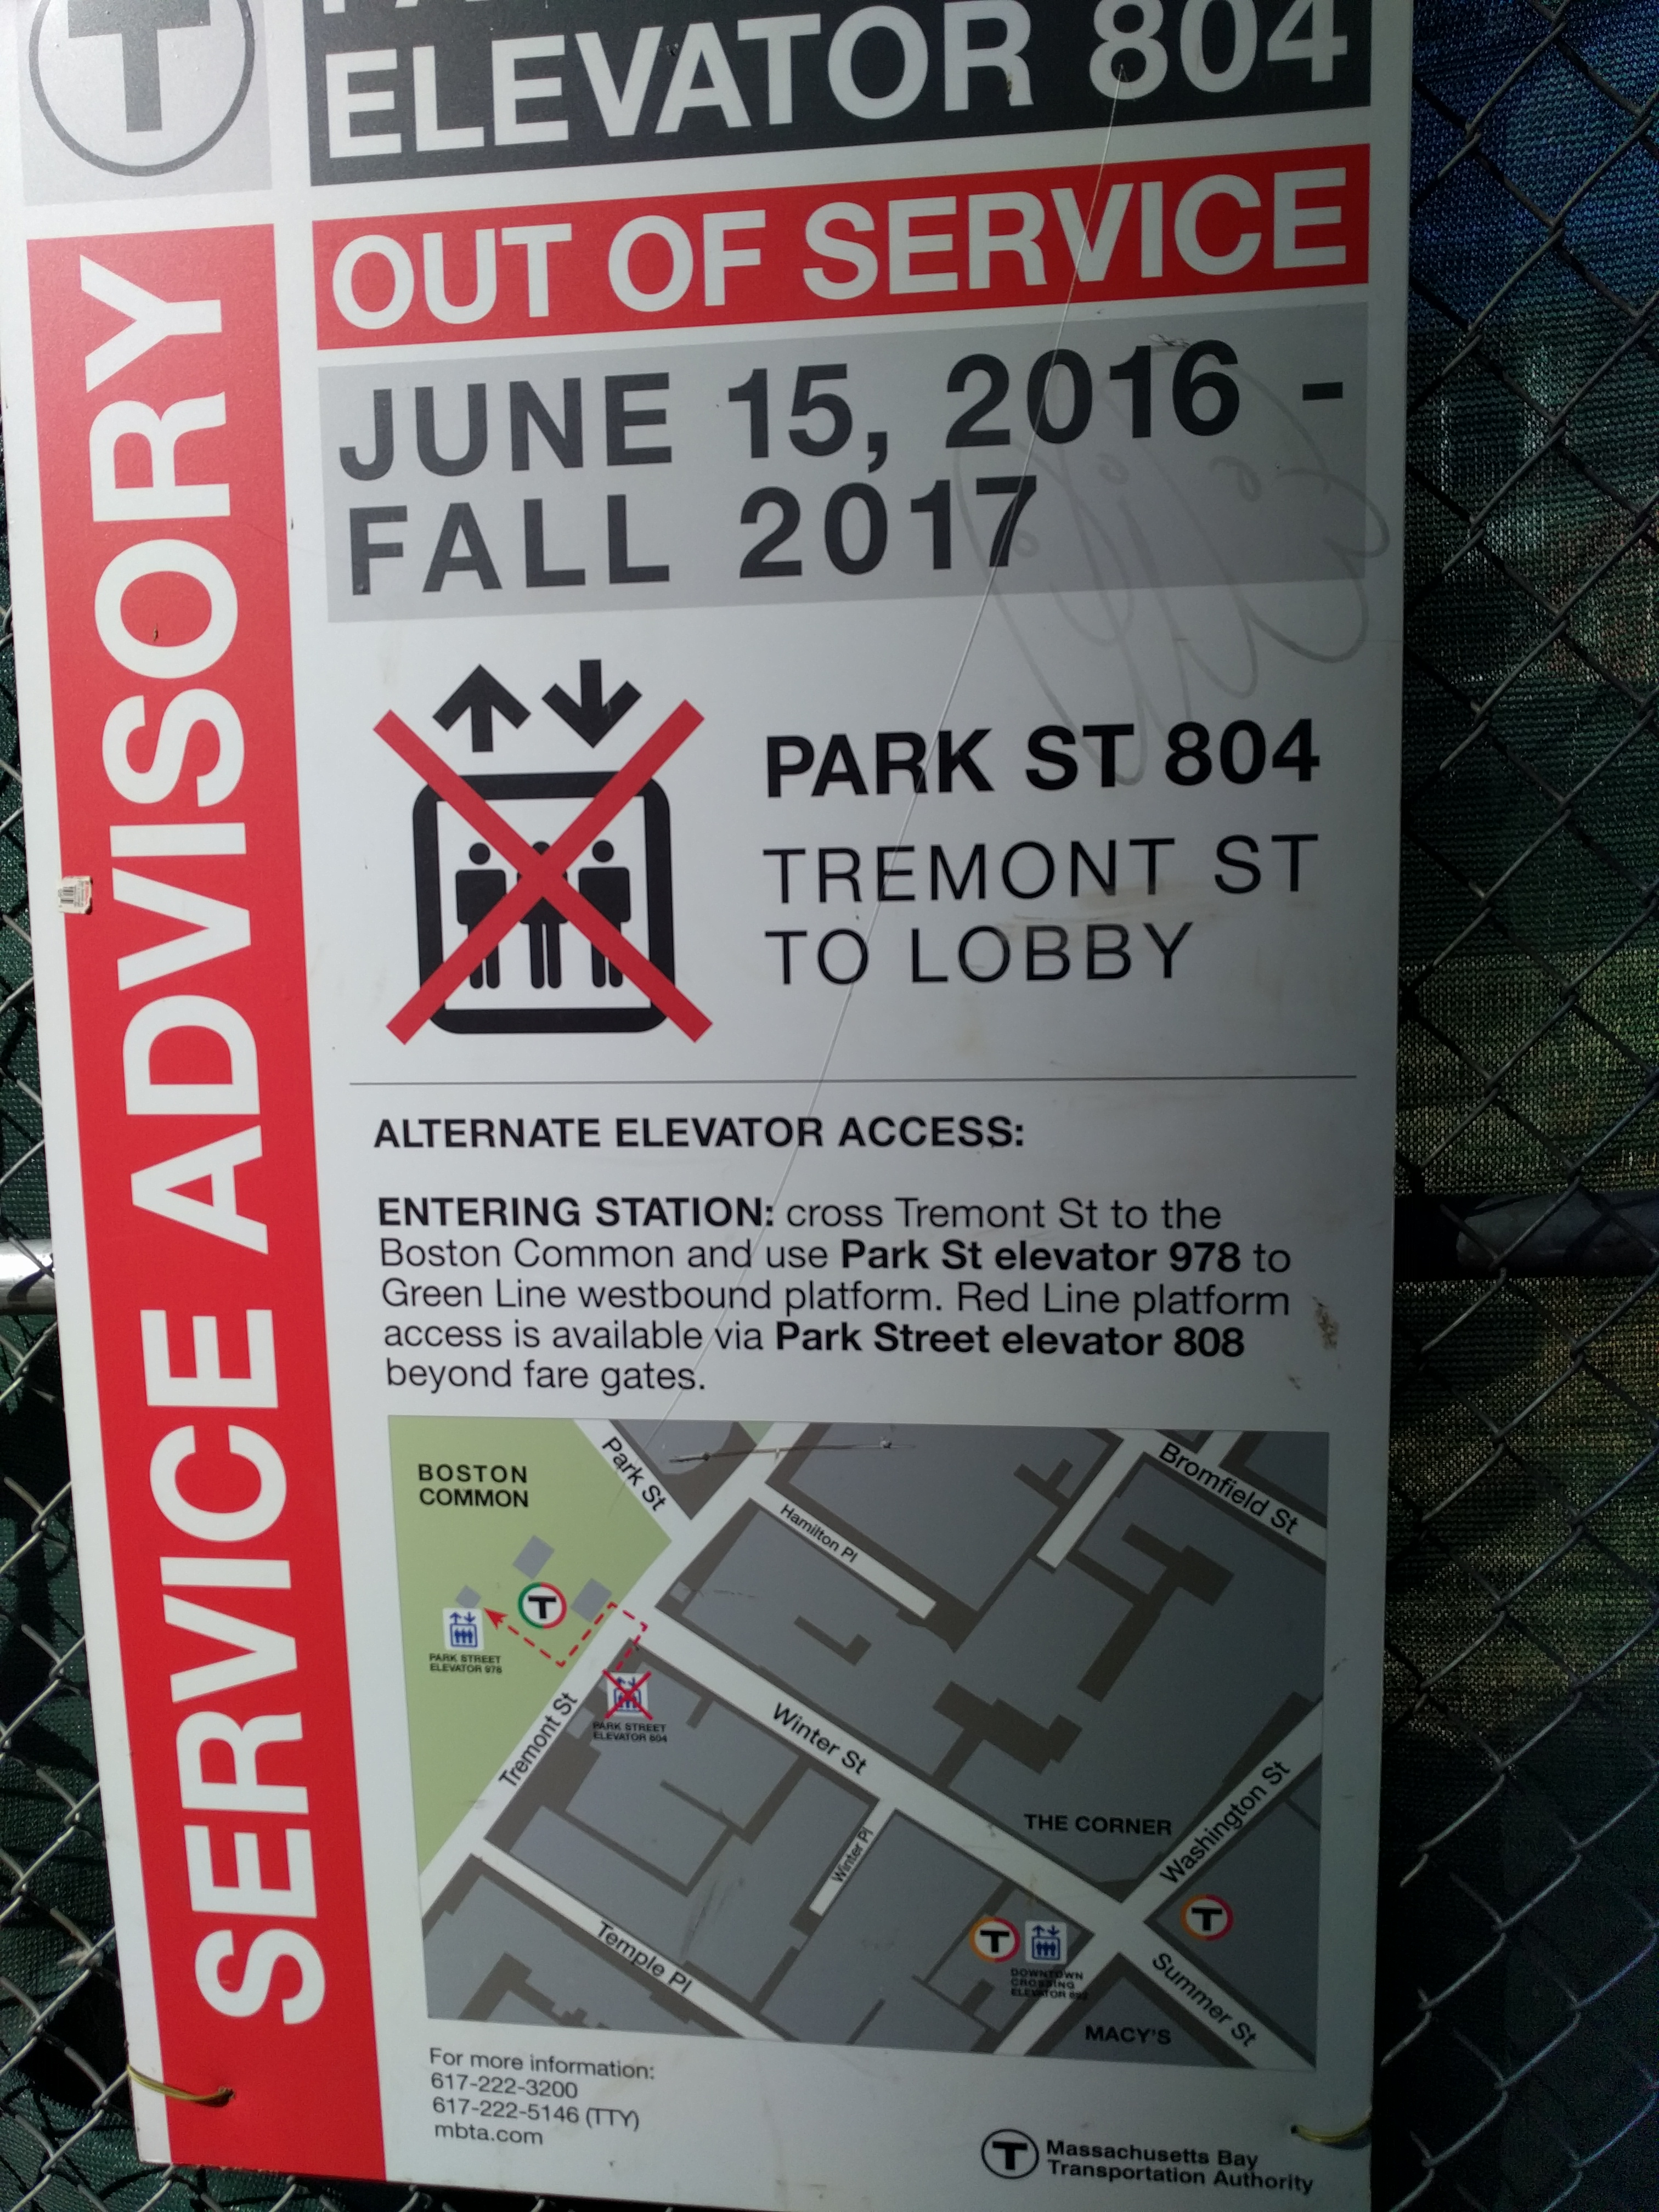 A service advisory poster. Elevator 804 out of service June 15, 2016 through Fall 2017. There's a street map with elevators and station entrances marked for Park and Downtown Crossing. One elevator is crossed out.